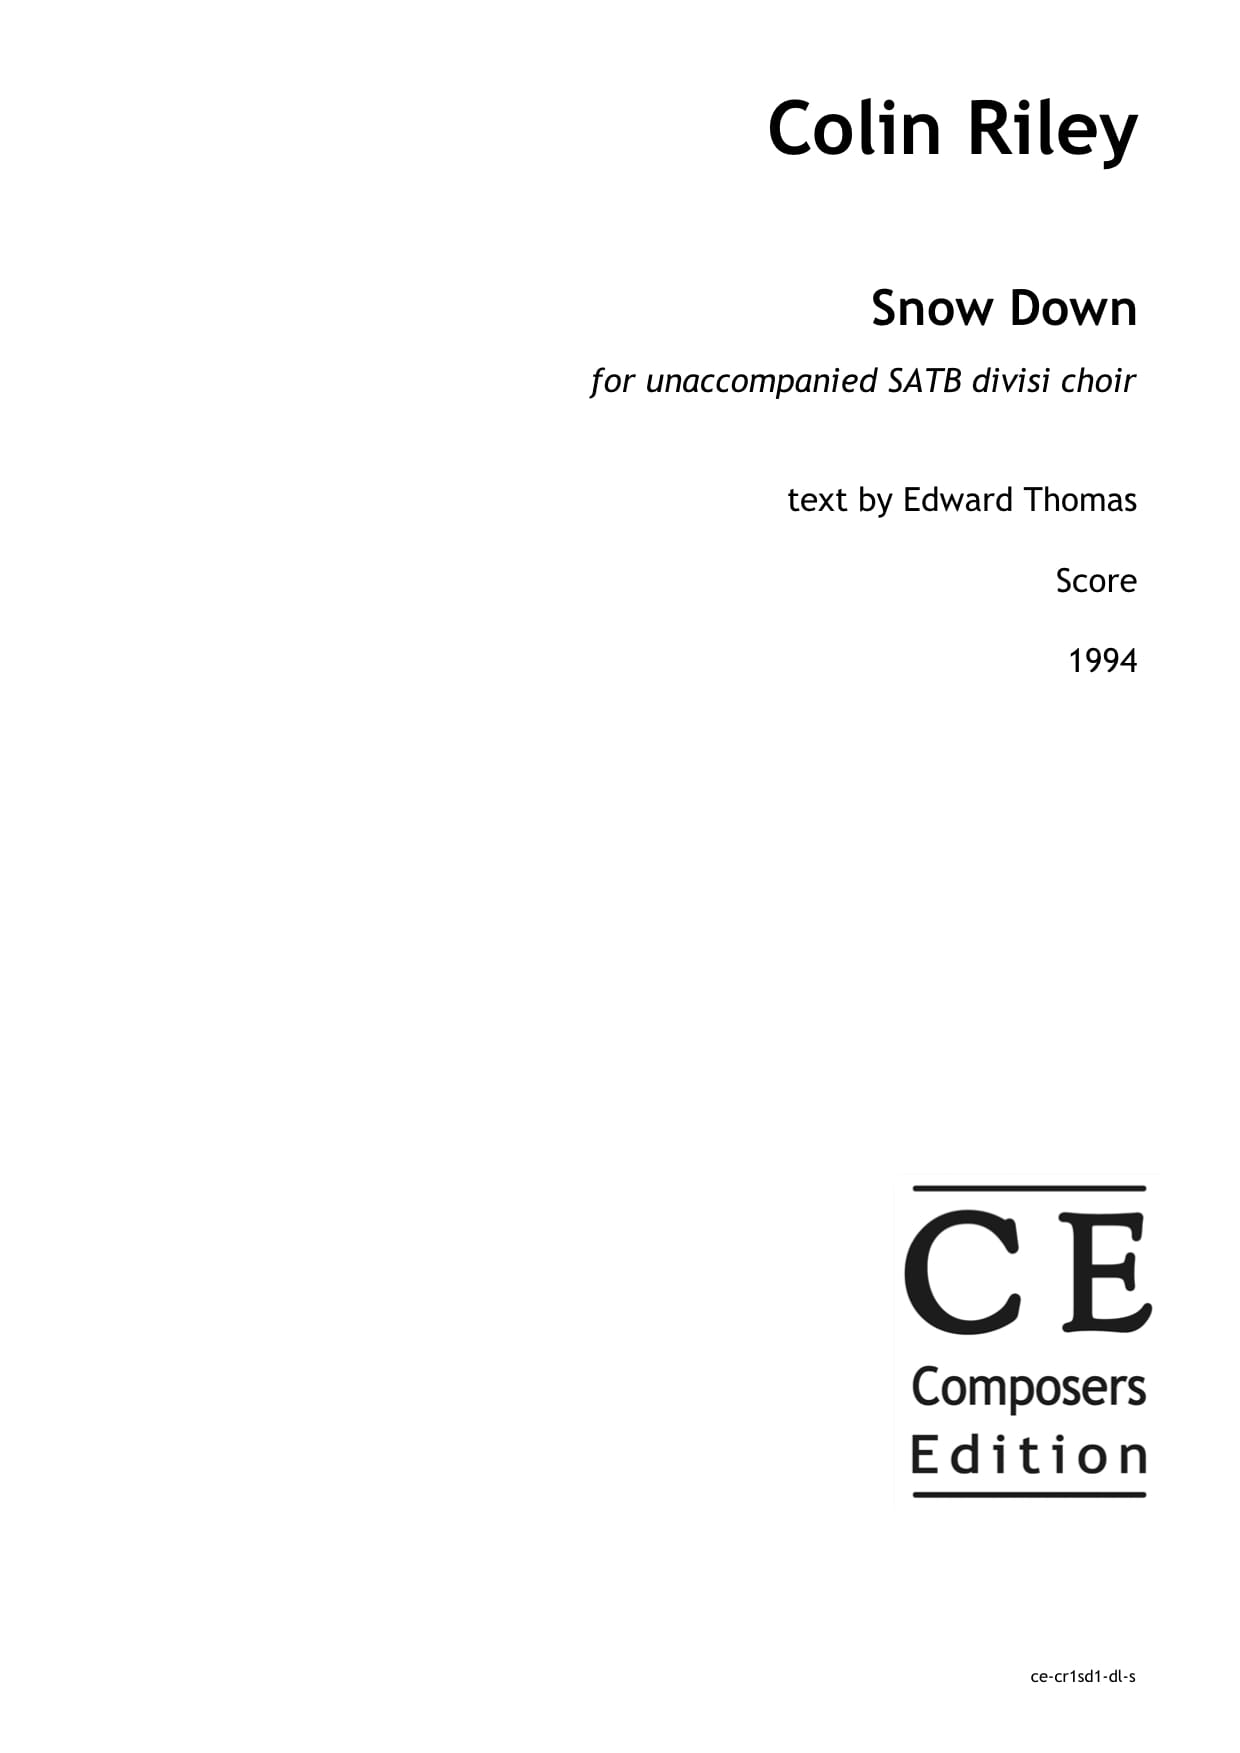 Colin Riley: Snow Down for unaccompanied SATB divisi choir